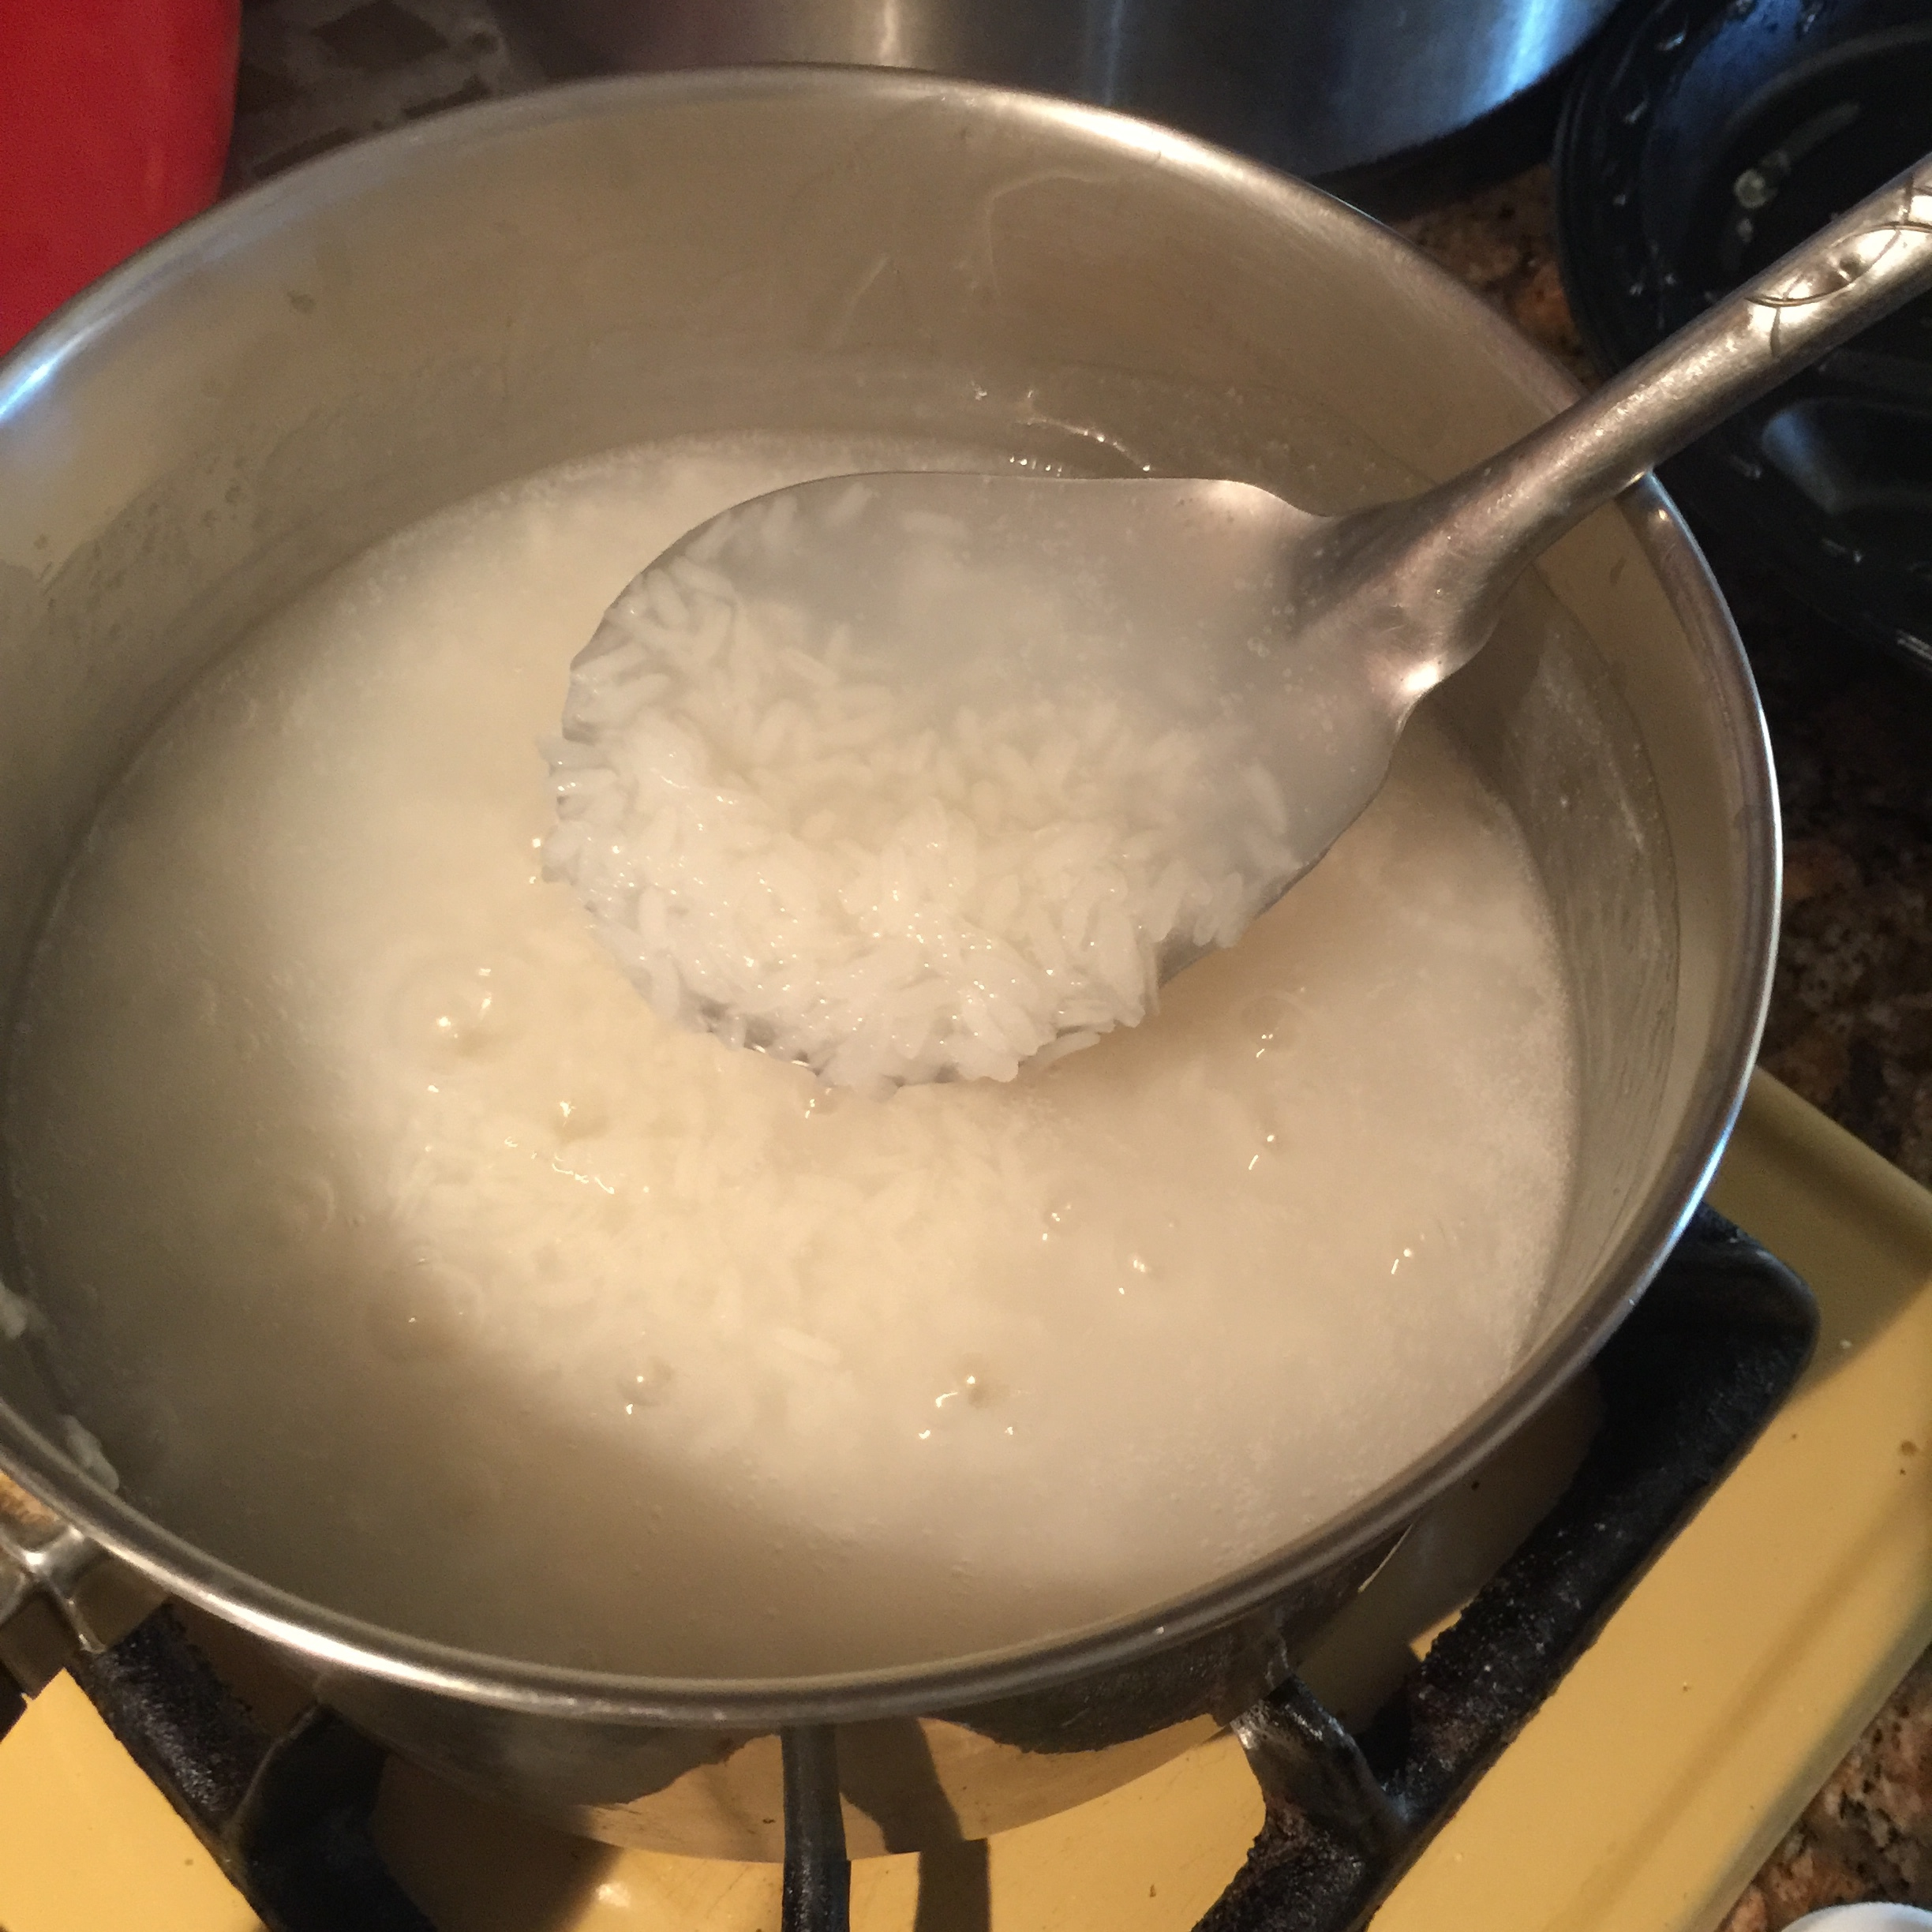 Photo 1: The rice consistency you want to achieve before adding your milk.